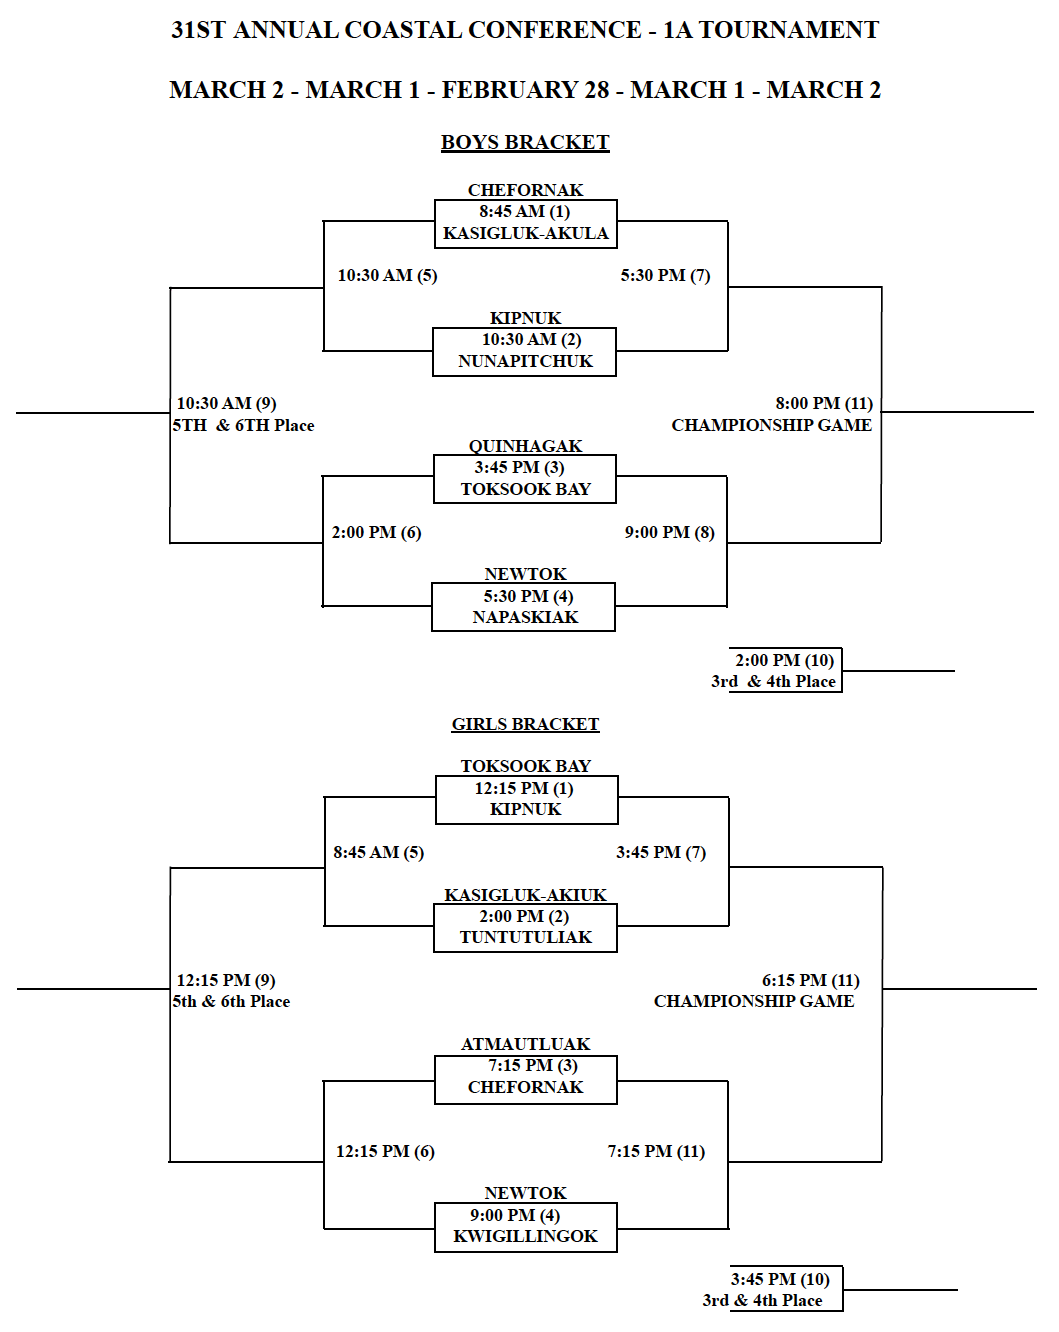 31st coastal conference schedule